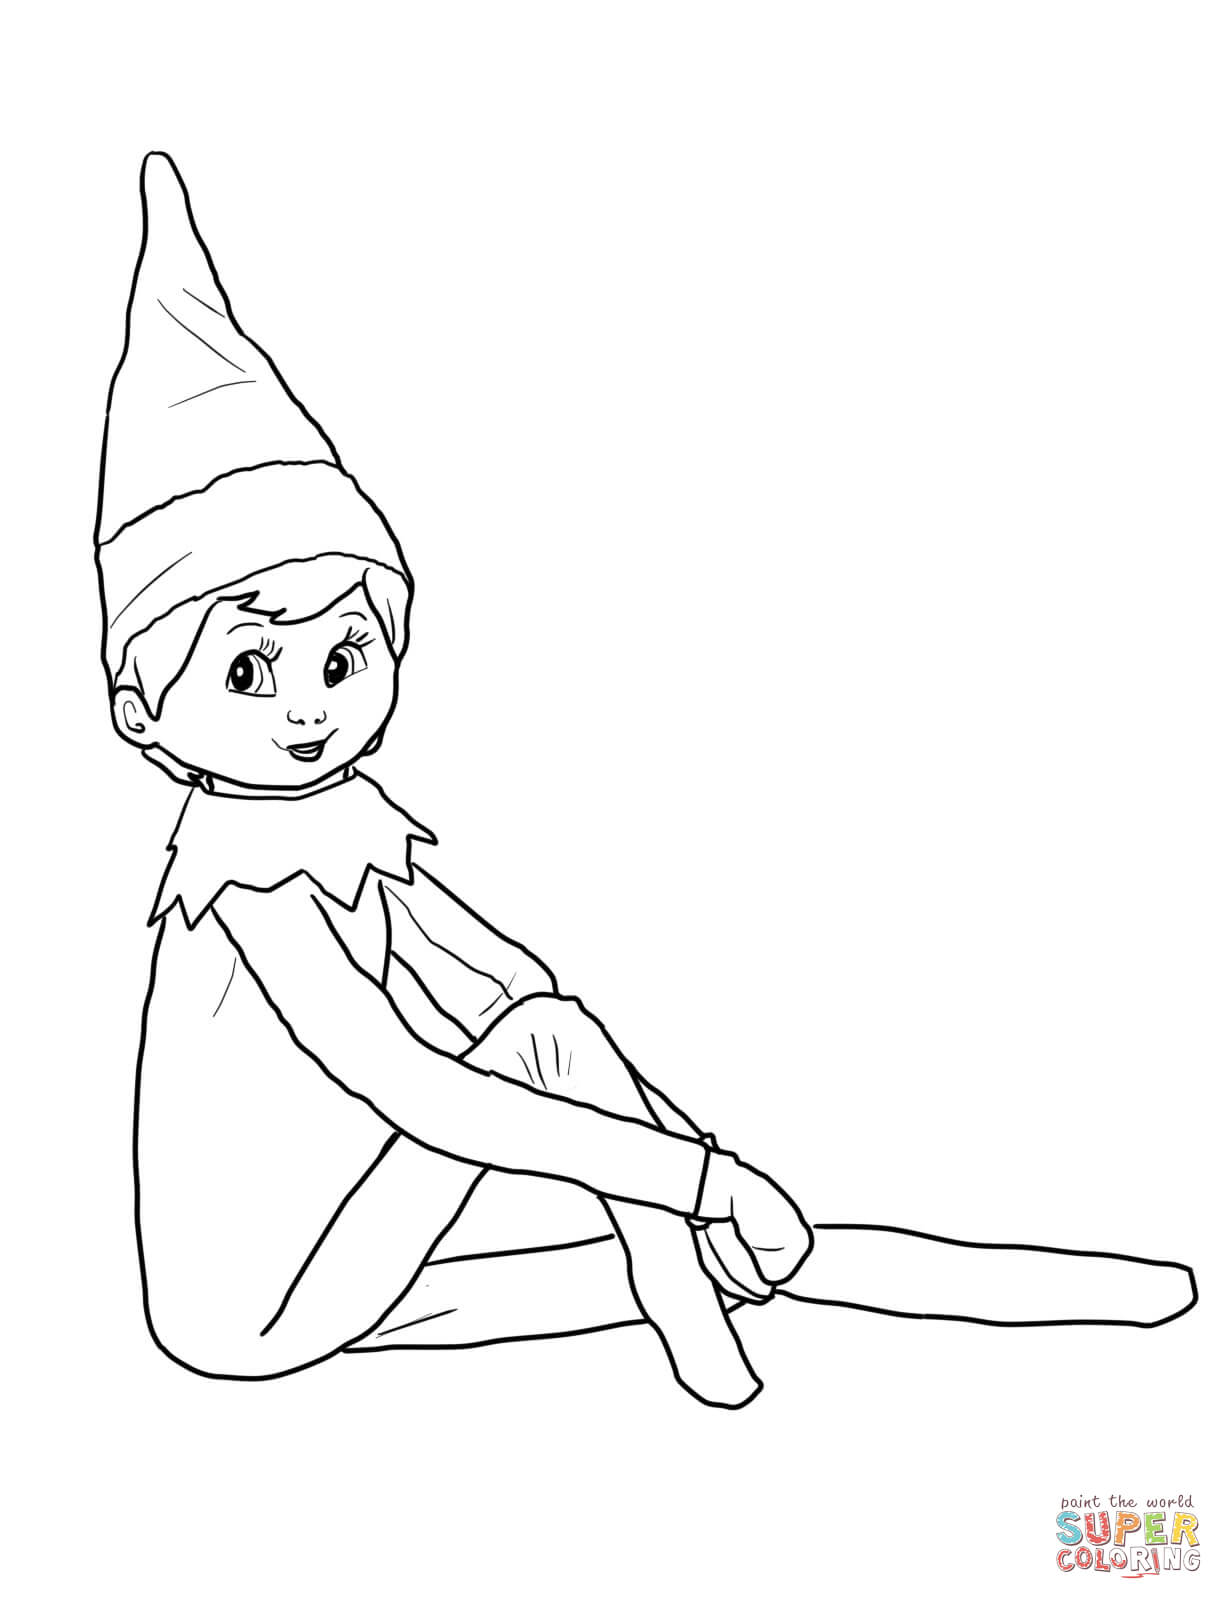 1224x1600 Elf On The Shelf Coloring Pages Free Coloring Pages Elf Coloring